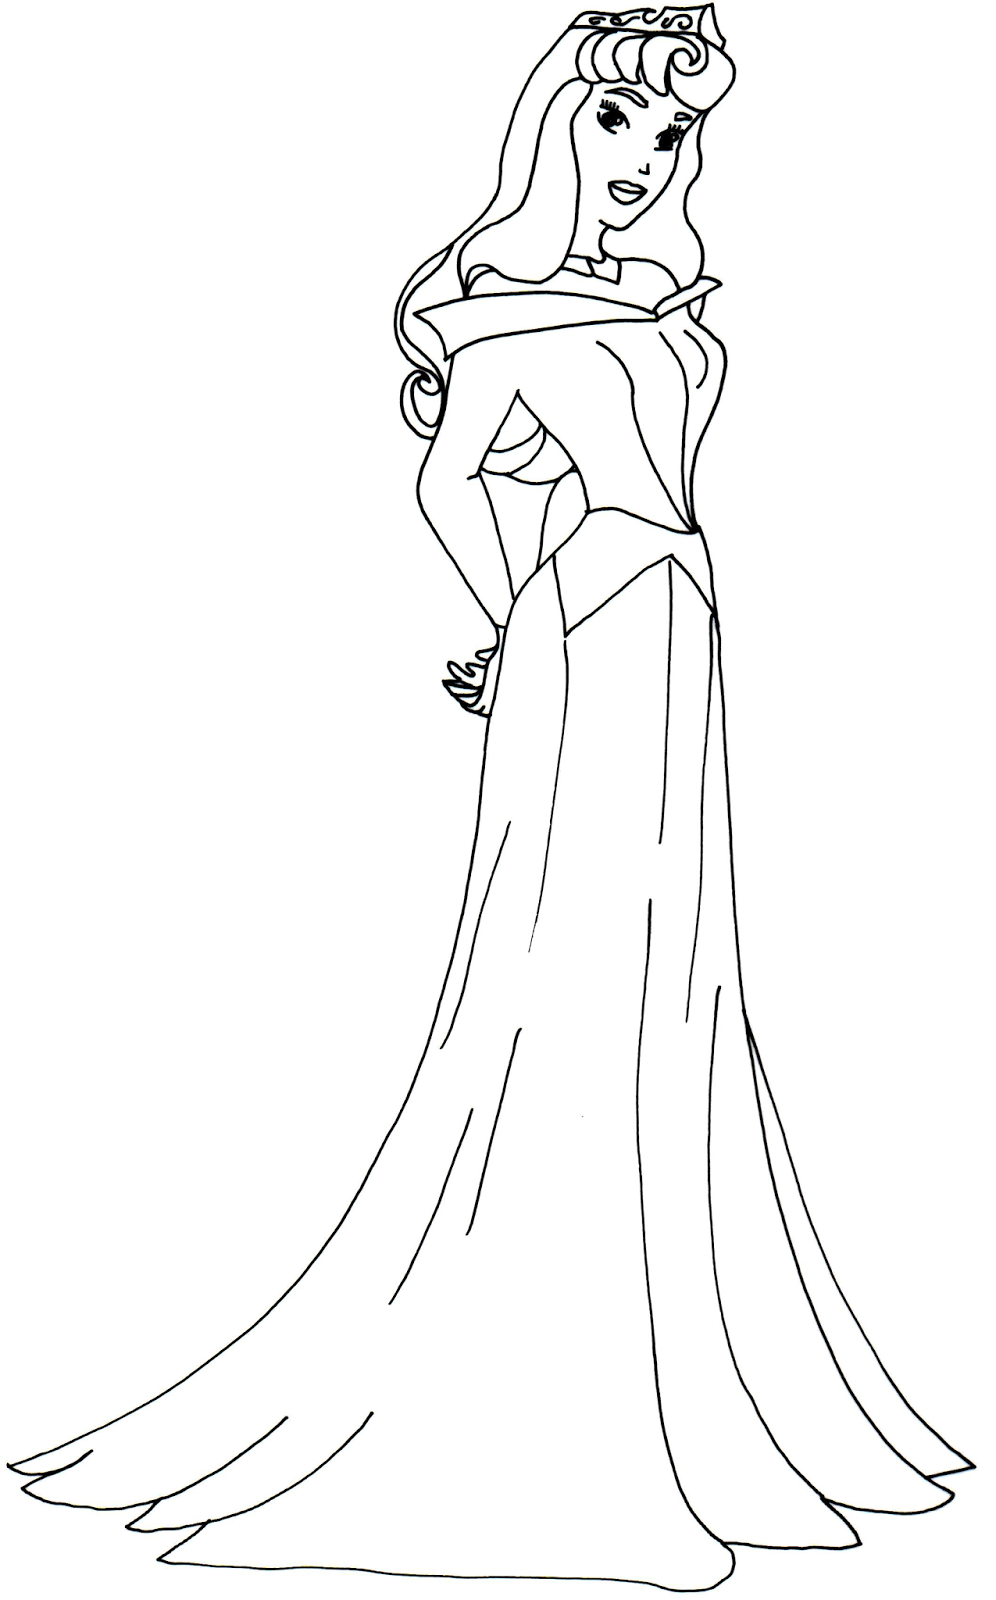 princess aurora sofia the first coloring page coloring kids